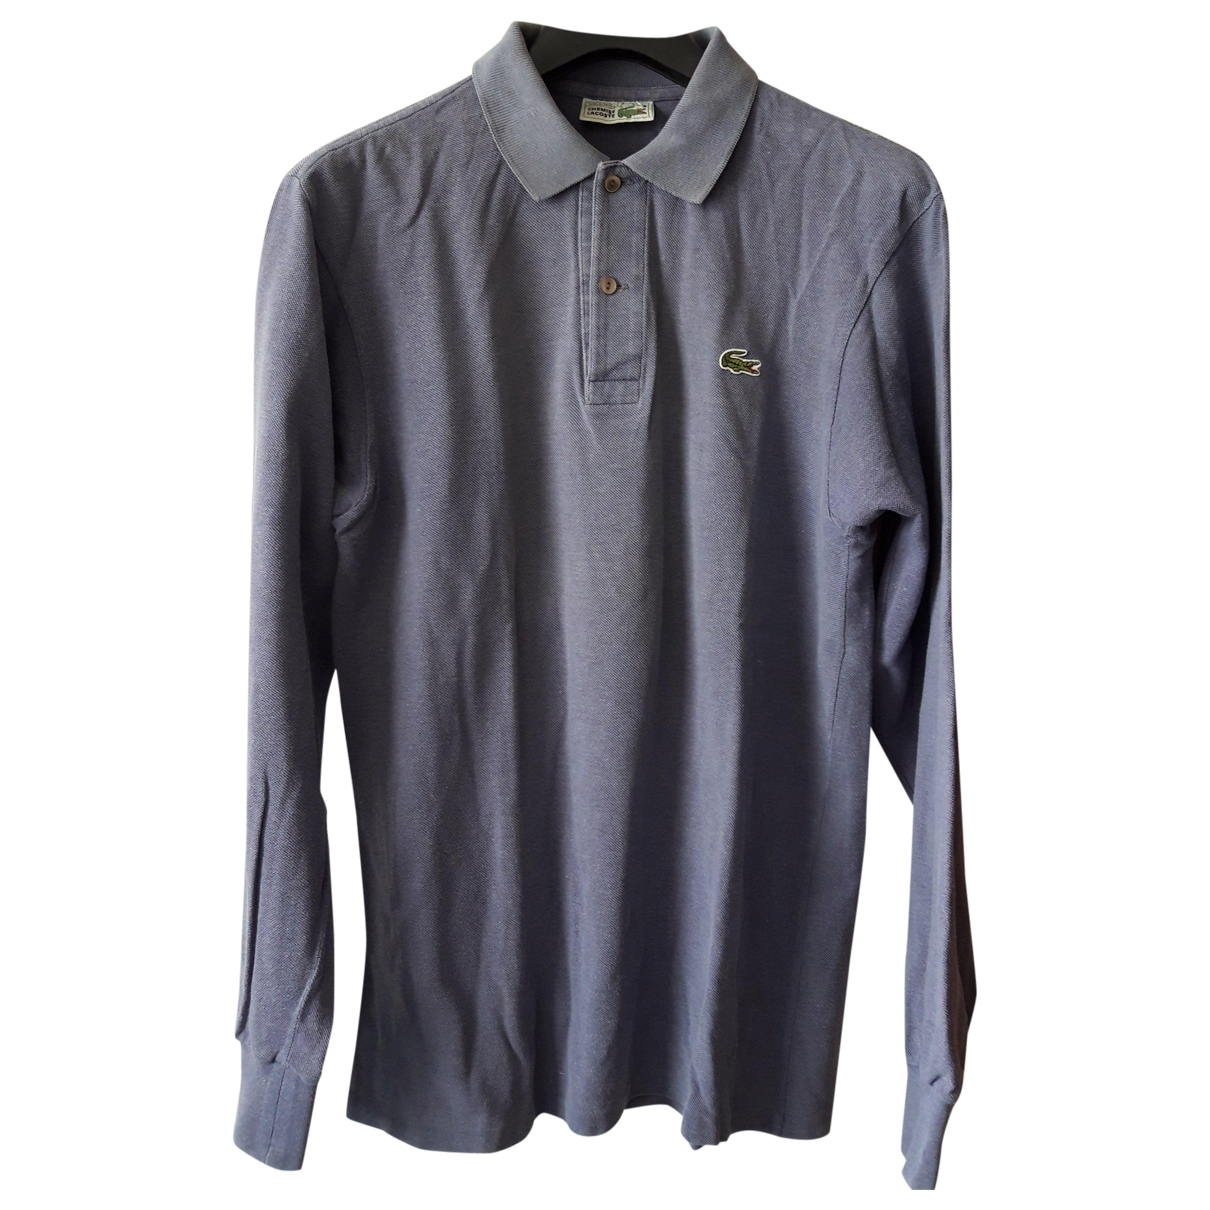 Lacoste \N Cotton Polo shirts for Men 3 0 - 6